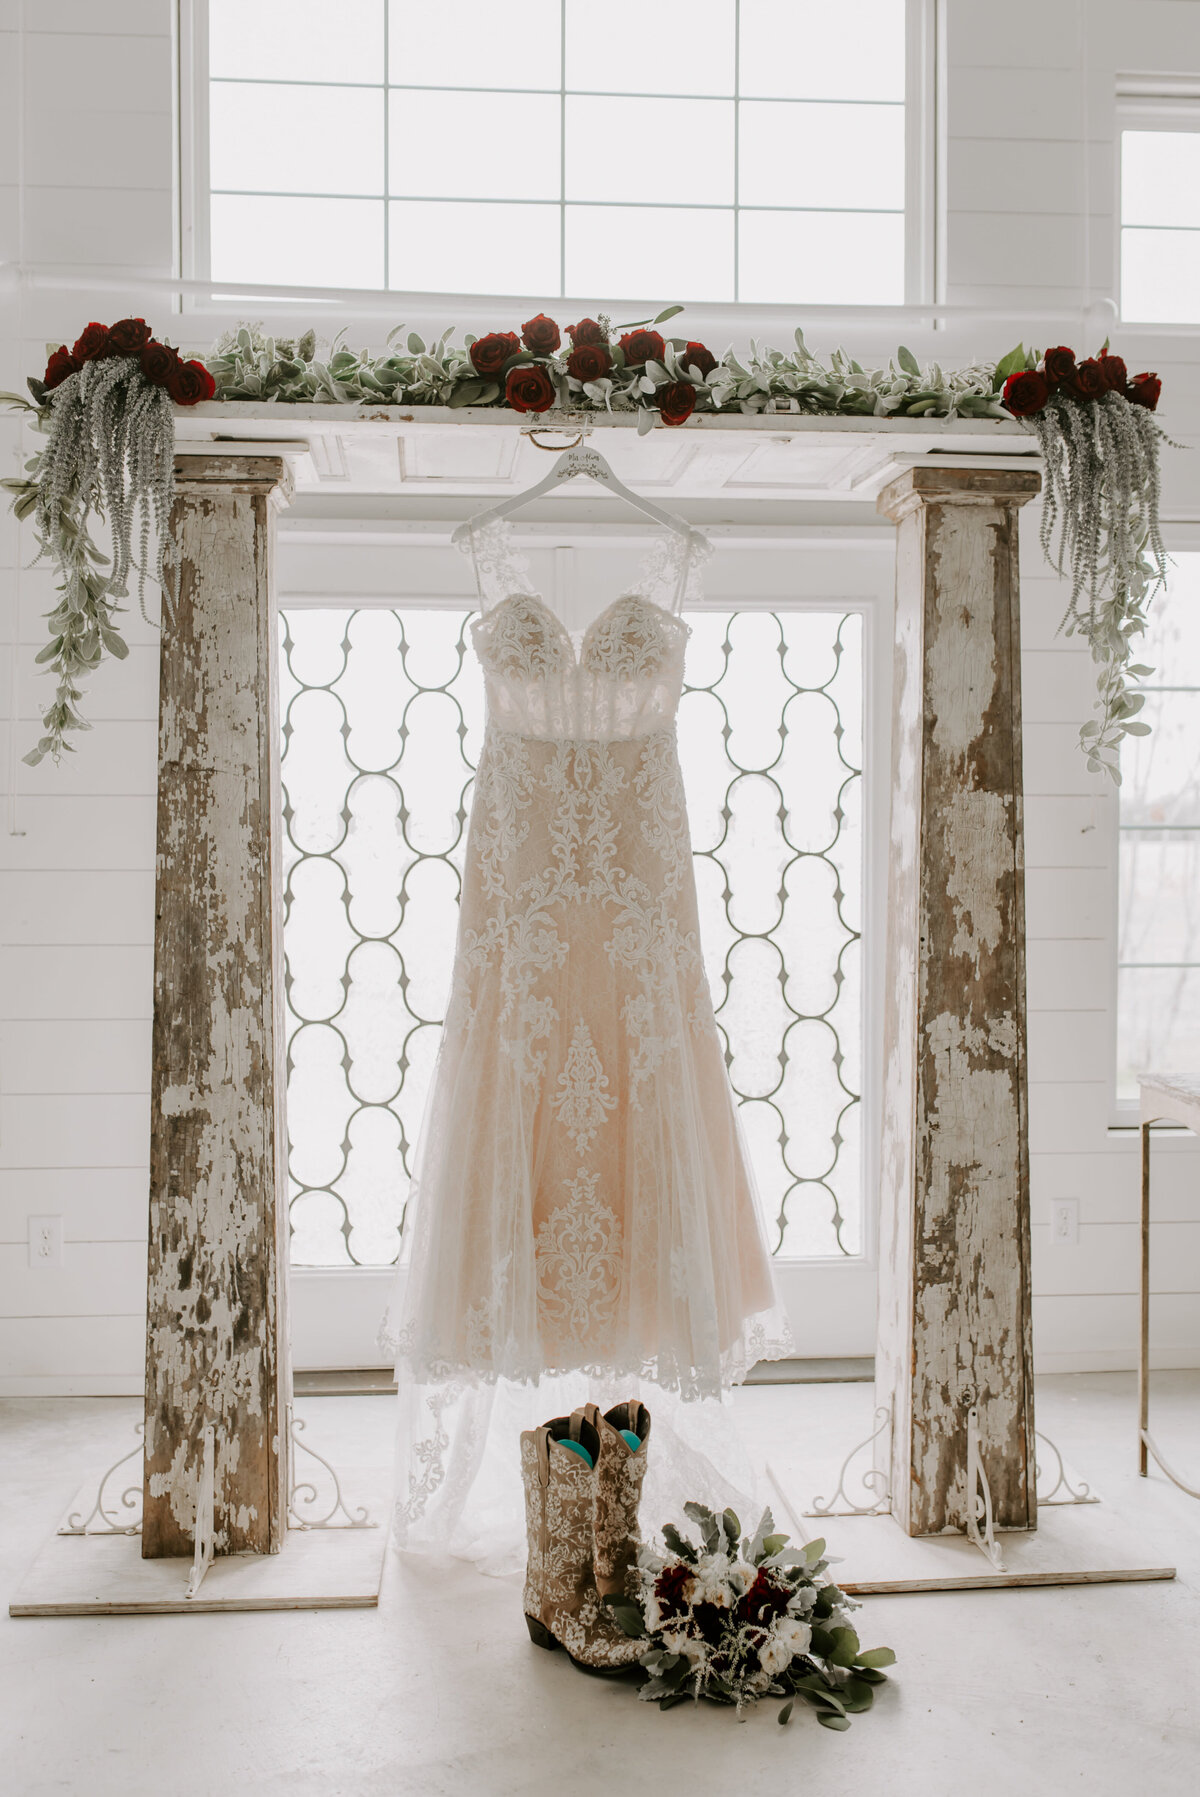 A lace wedding dress hanging in the chapel. There are wedding cowgirl boots in front of the dress with the brides bouquet